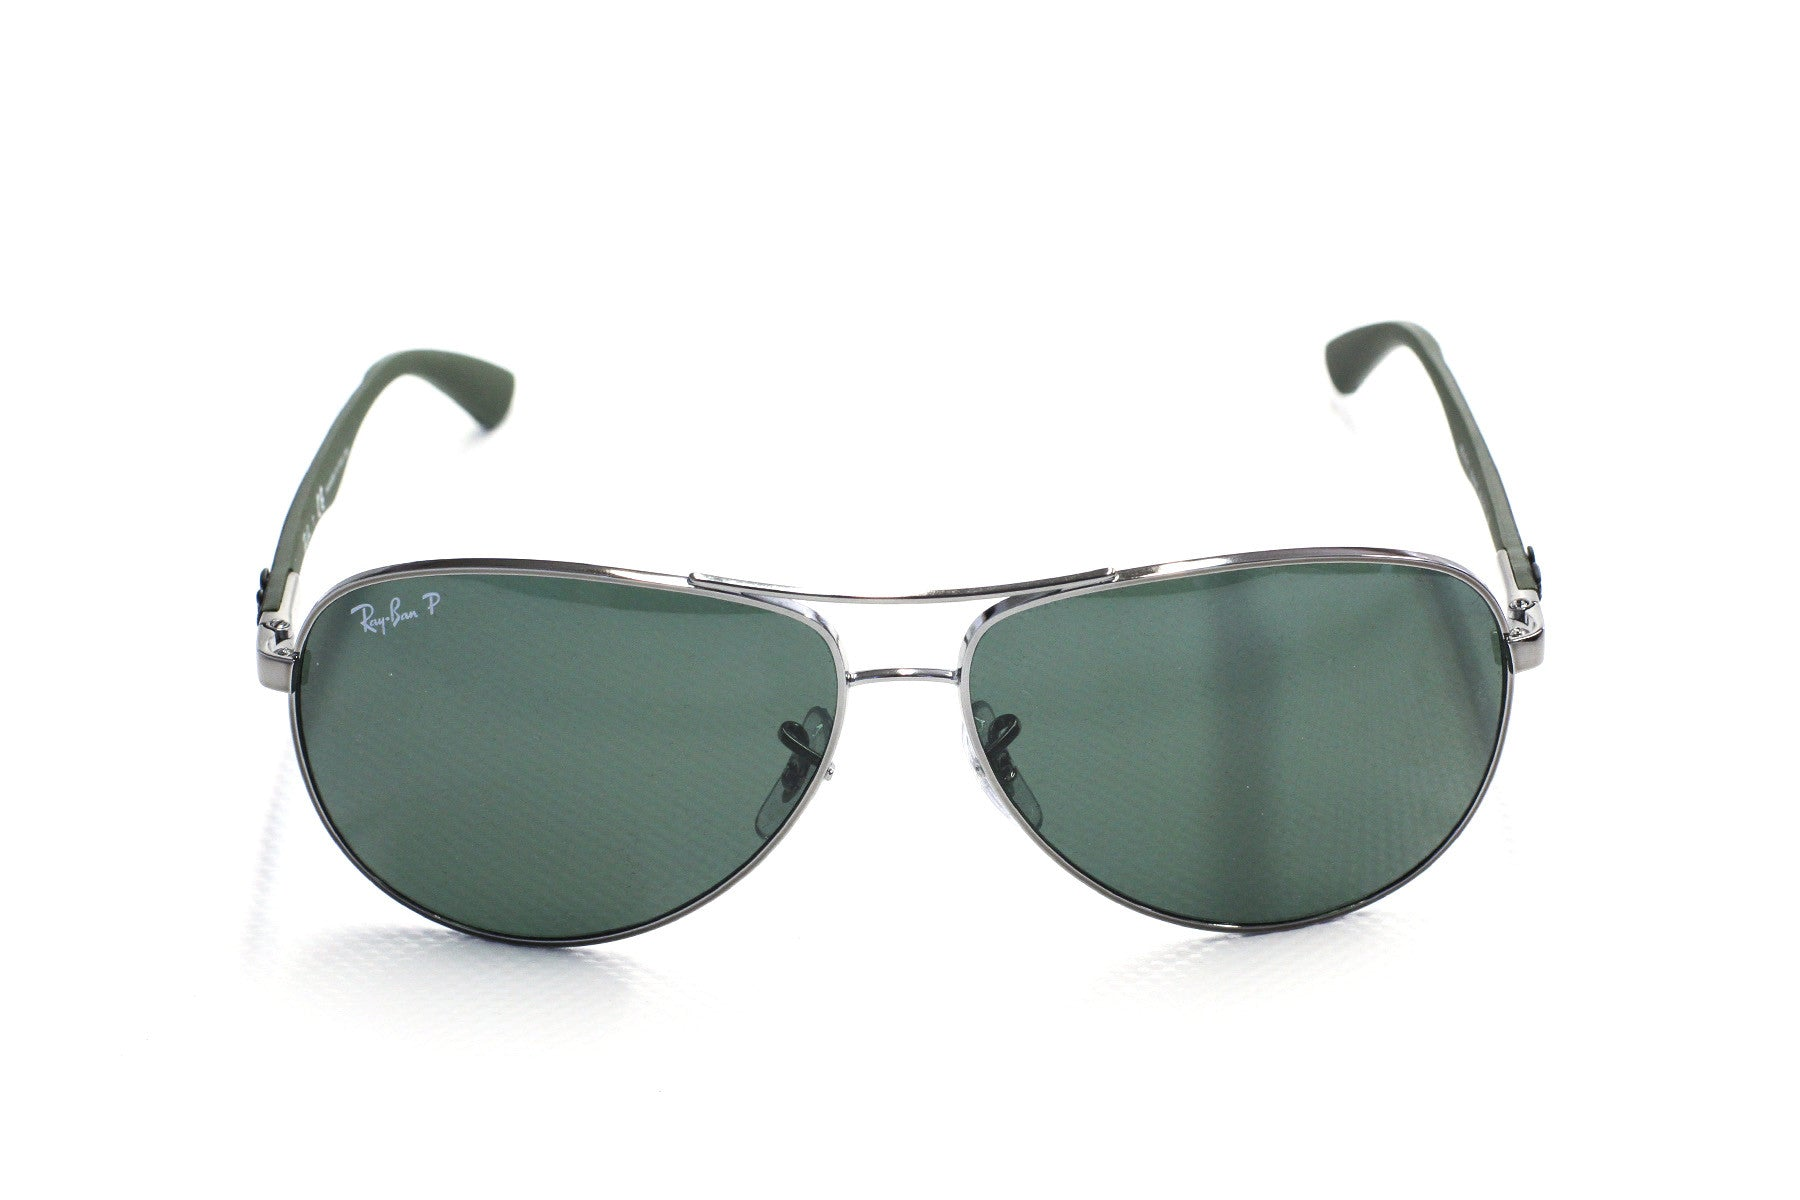 Ray-Ban RB8313 Carbon Fibre 004-N5 Gunmetal Polarised Sunglasses at Enderbys UK